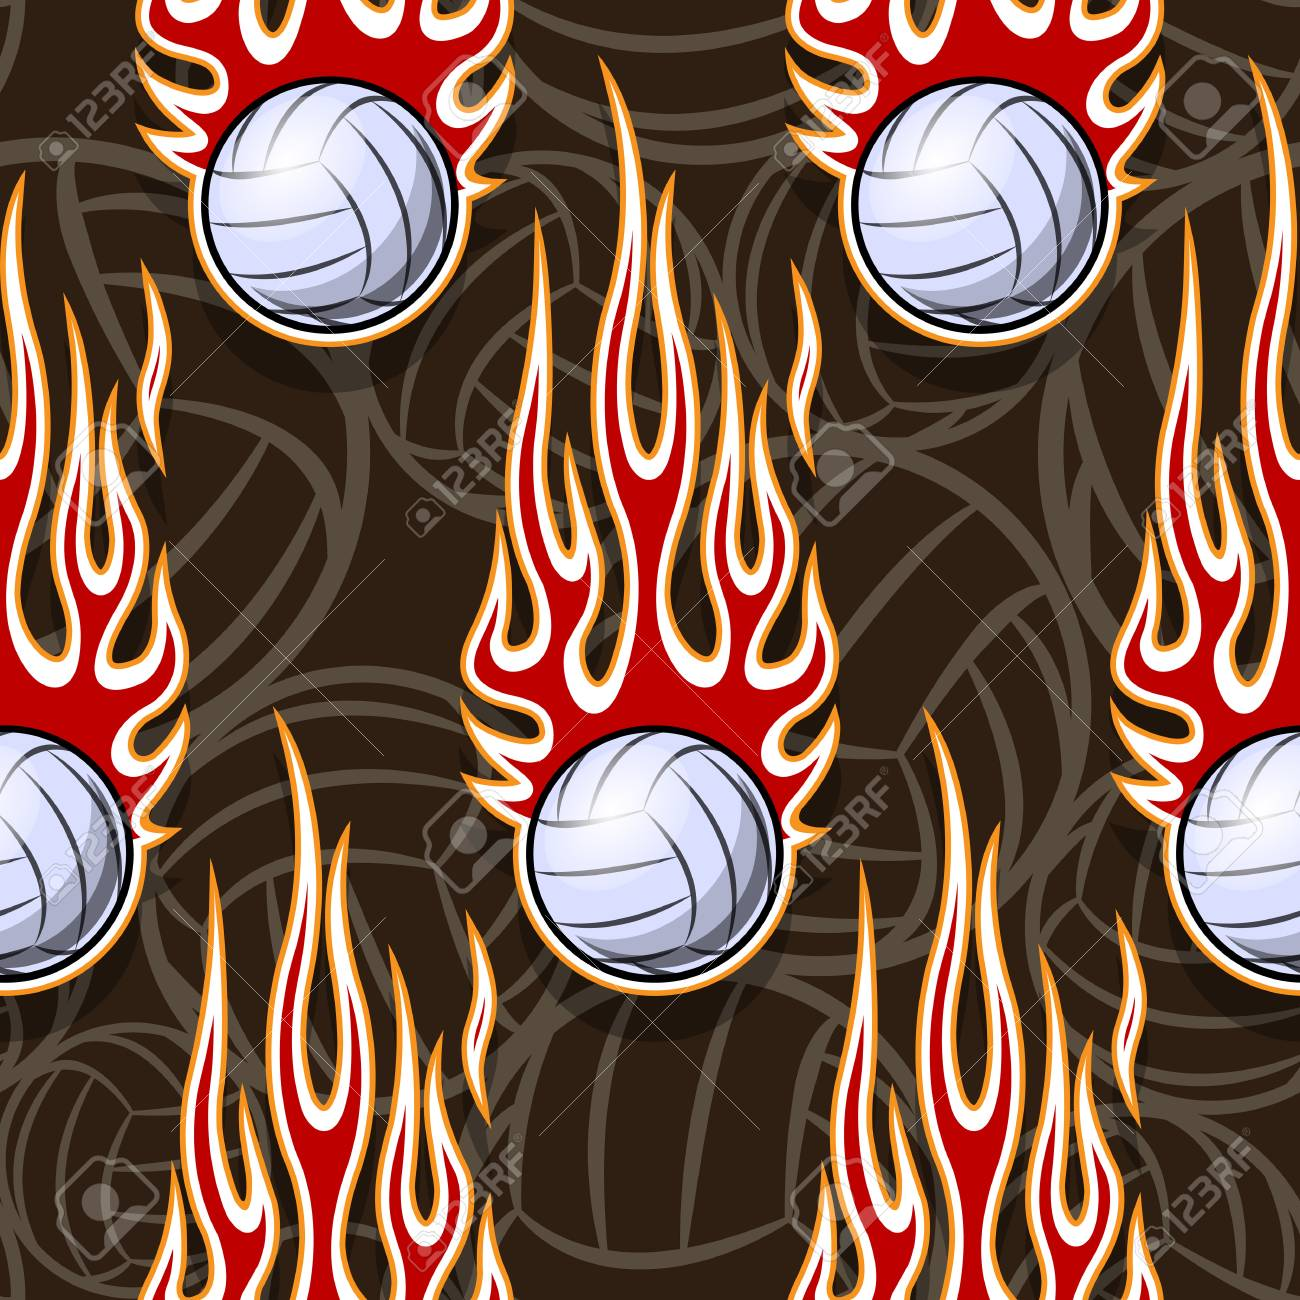 photo regarding Printable Volleyball referred to as Volleyball ball seamless routine with very hot rod flame. Printable..